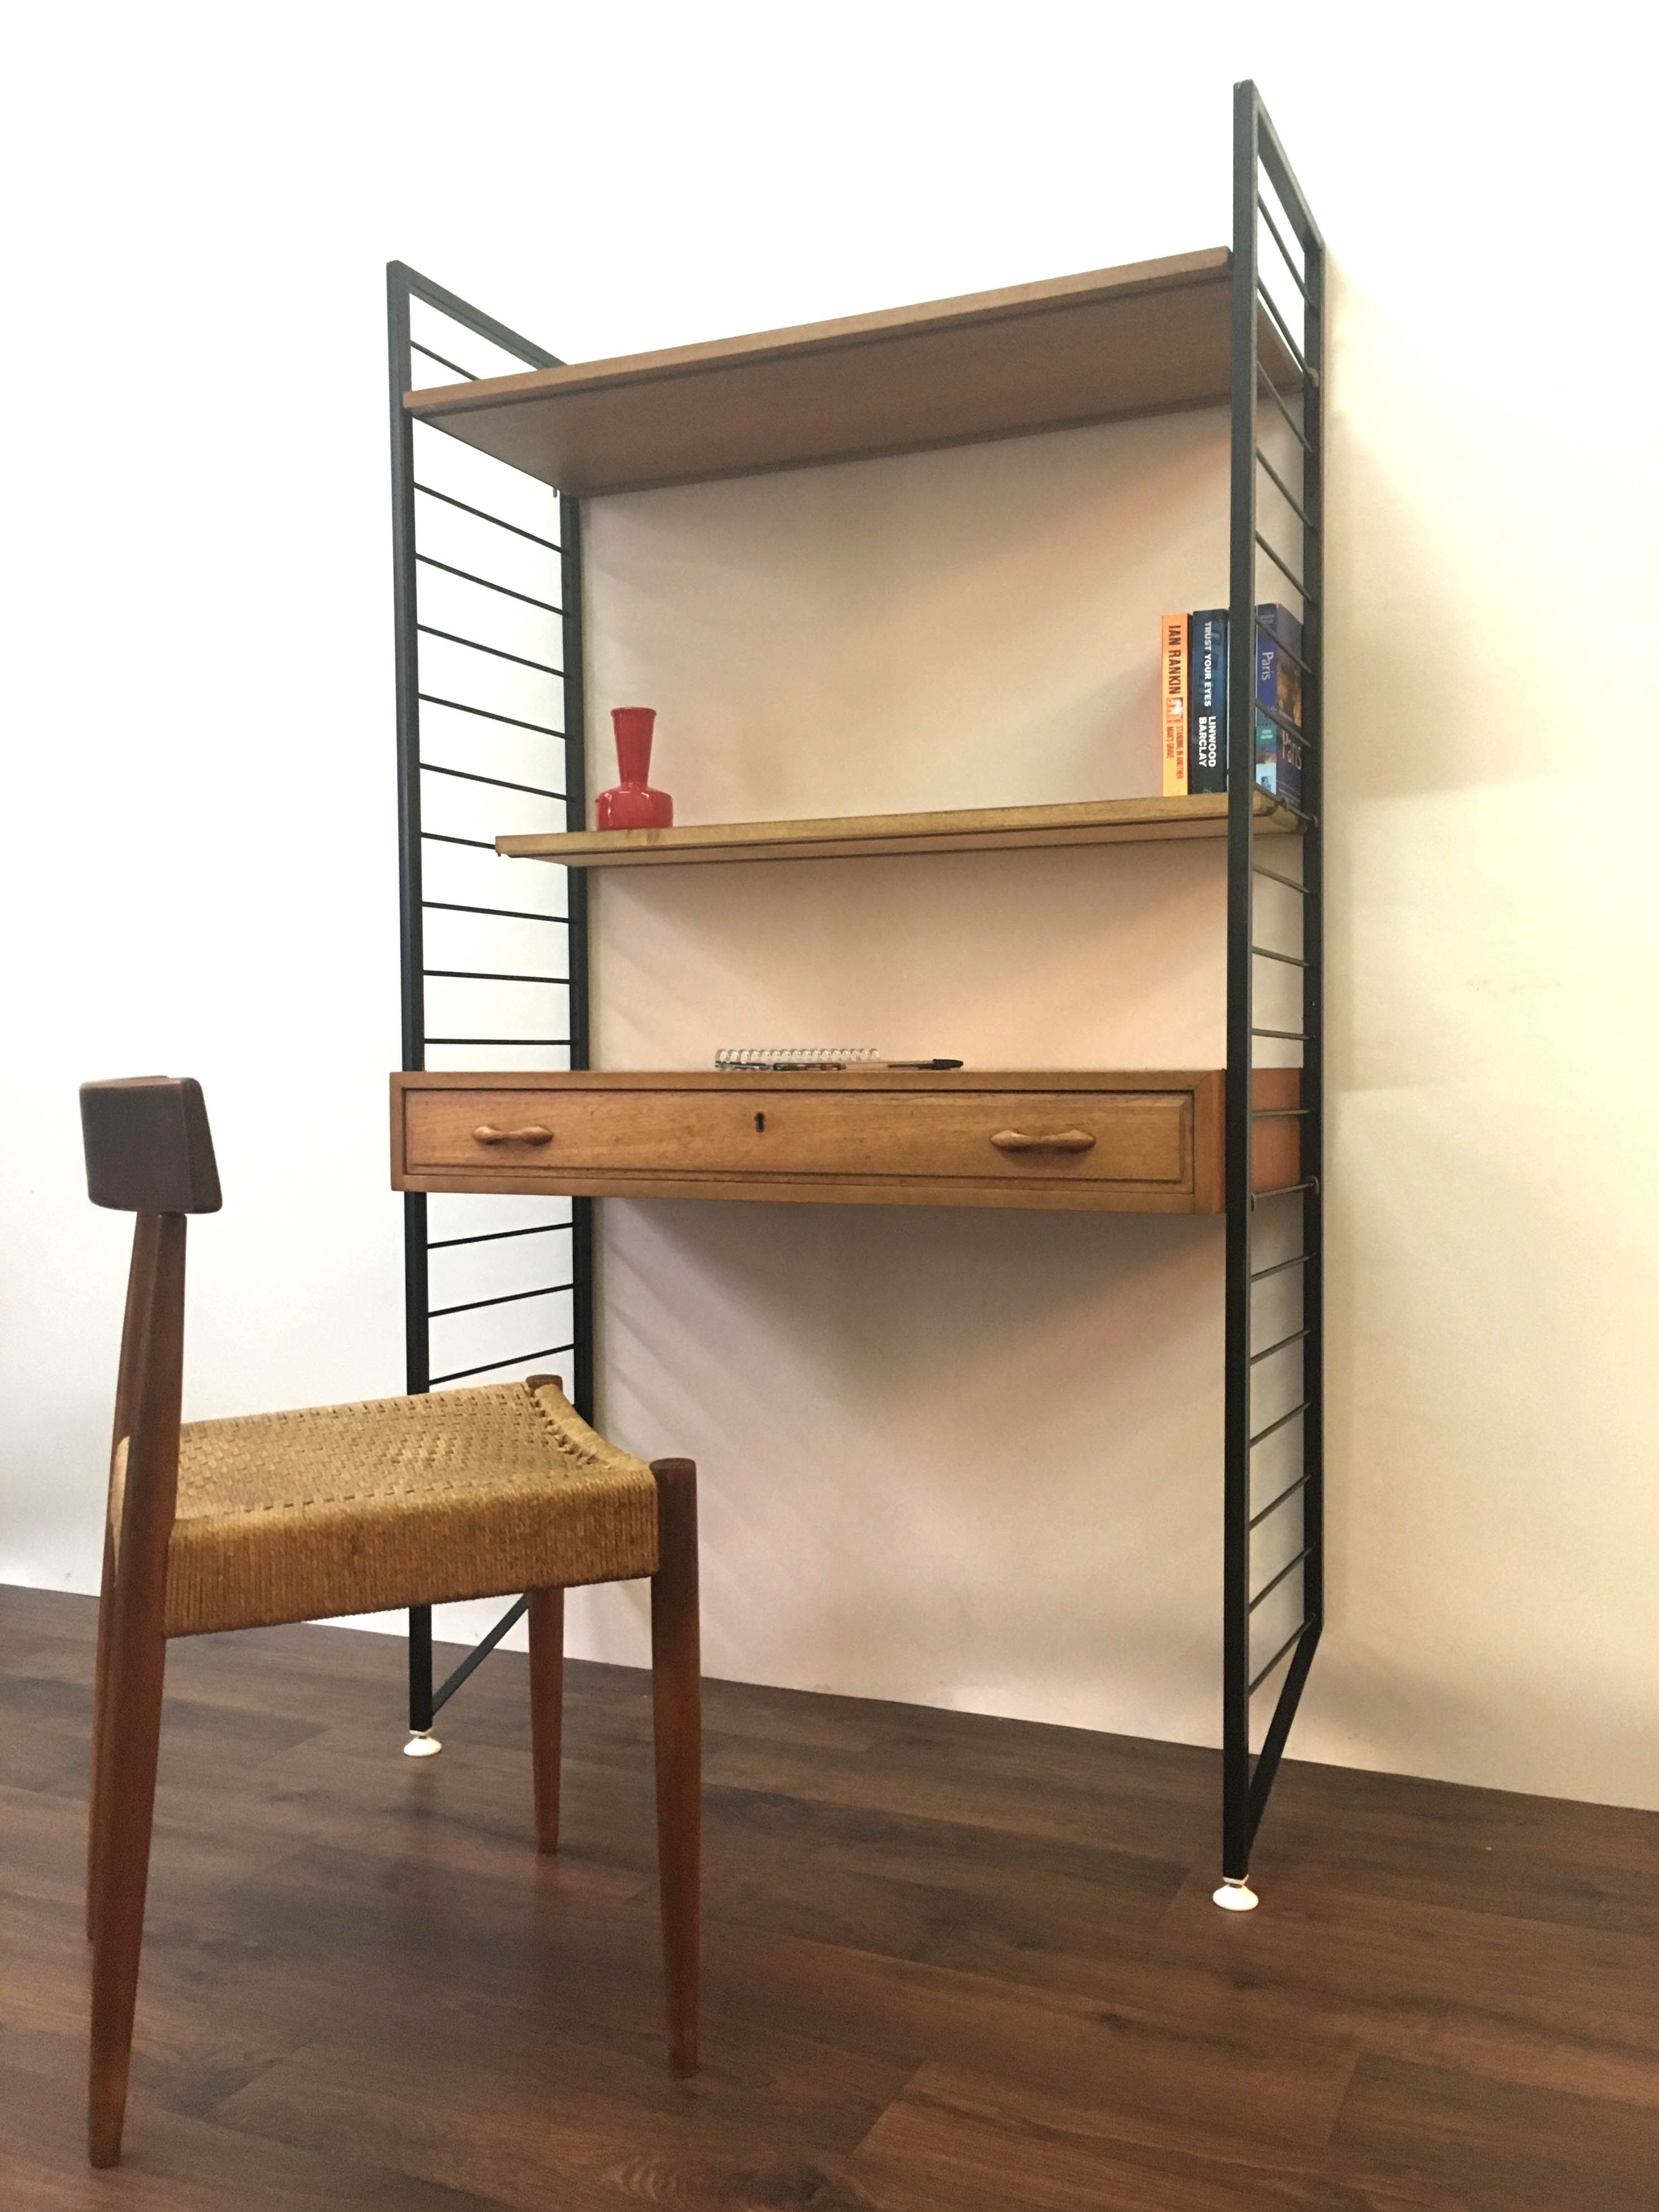 Staples Ladderax Shelving